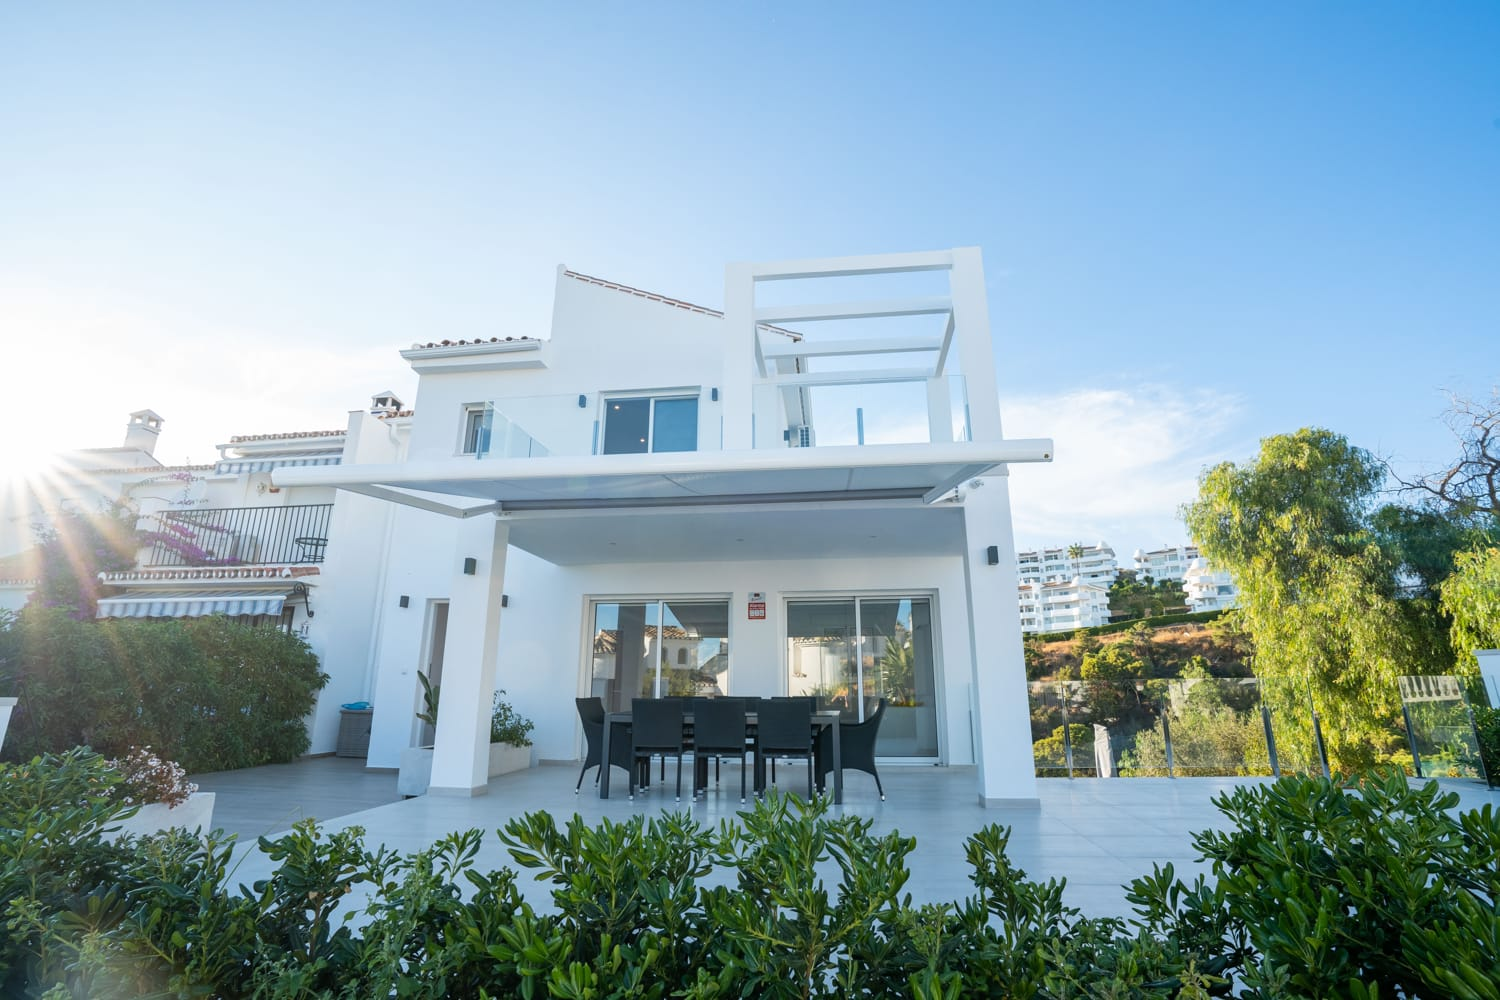 reforma integral villa mijas costa u projects (24)